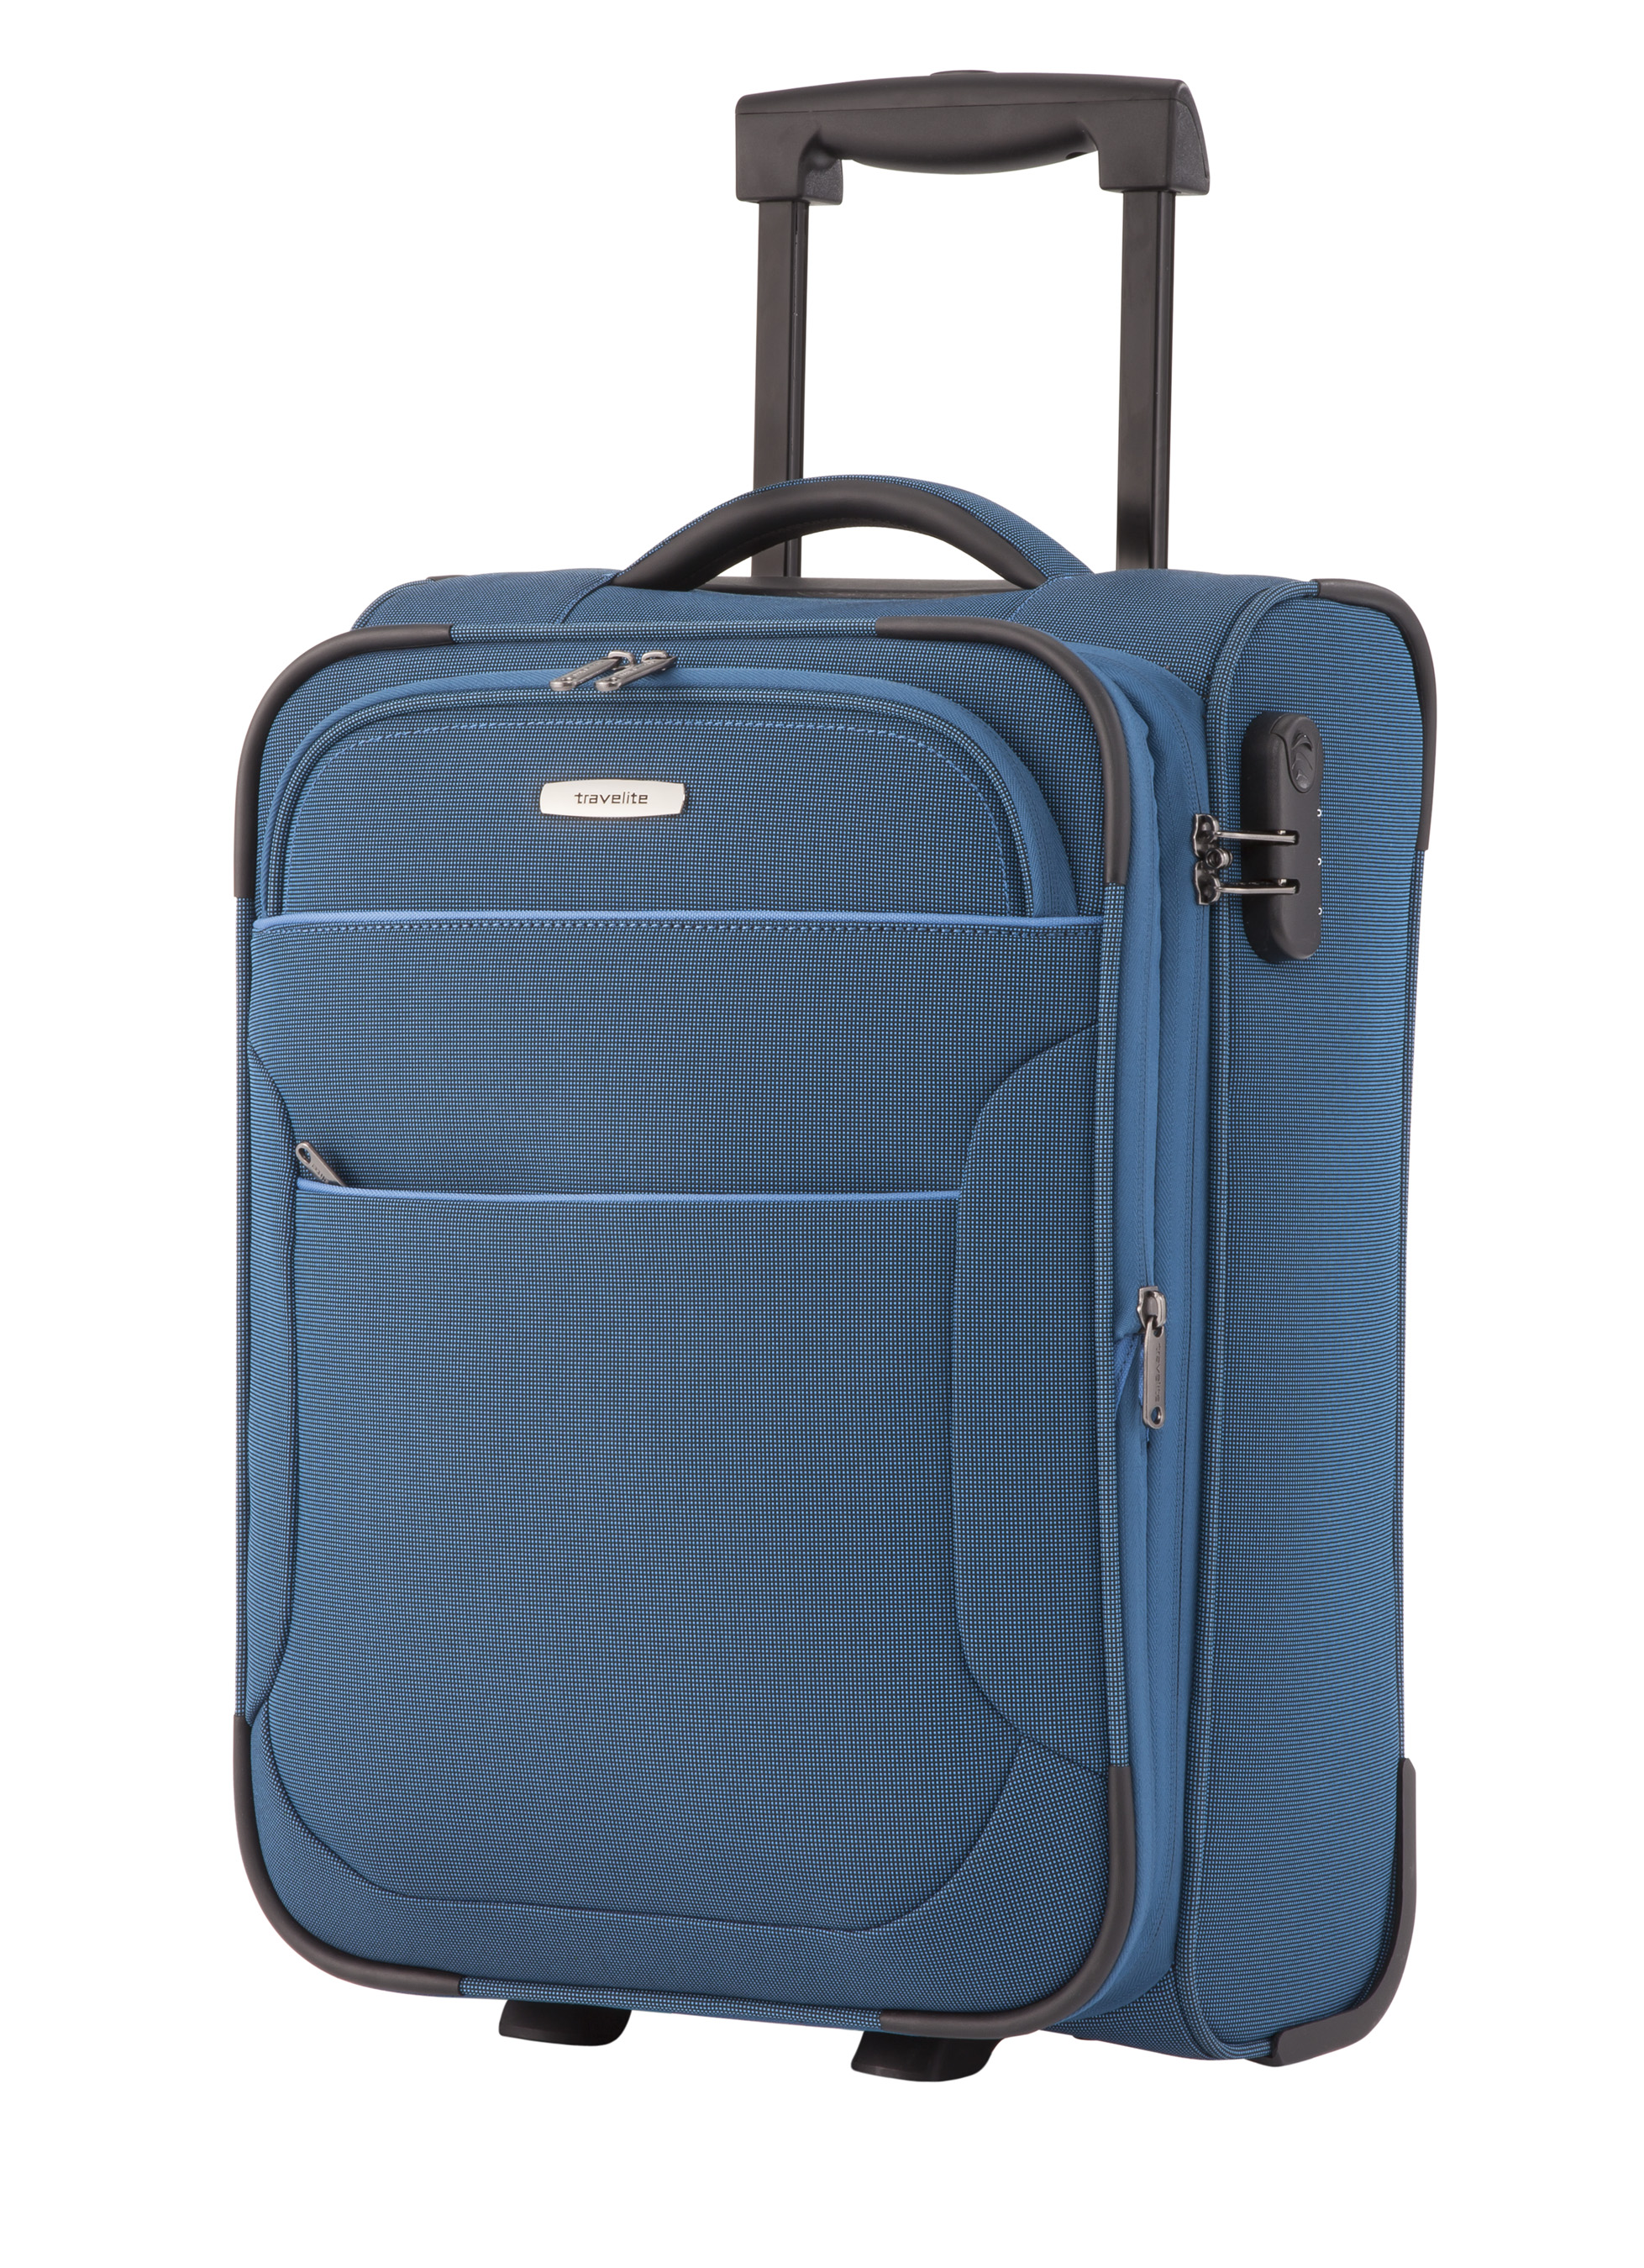 Travelite Derby 4w L/M, 2w S, Board Bag Petrol